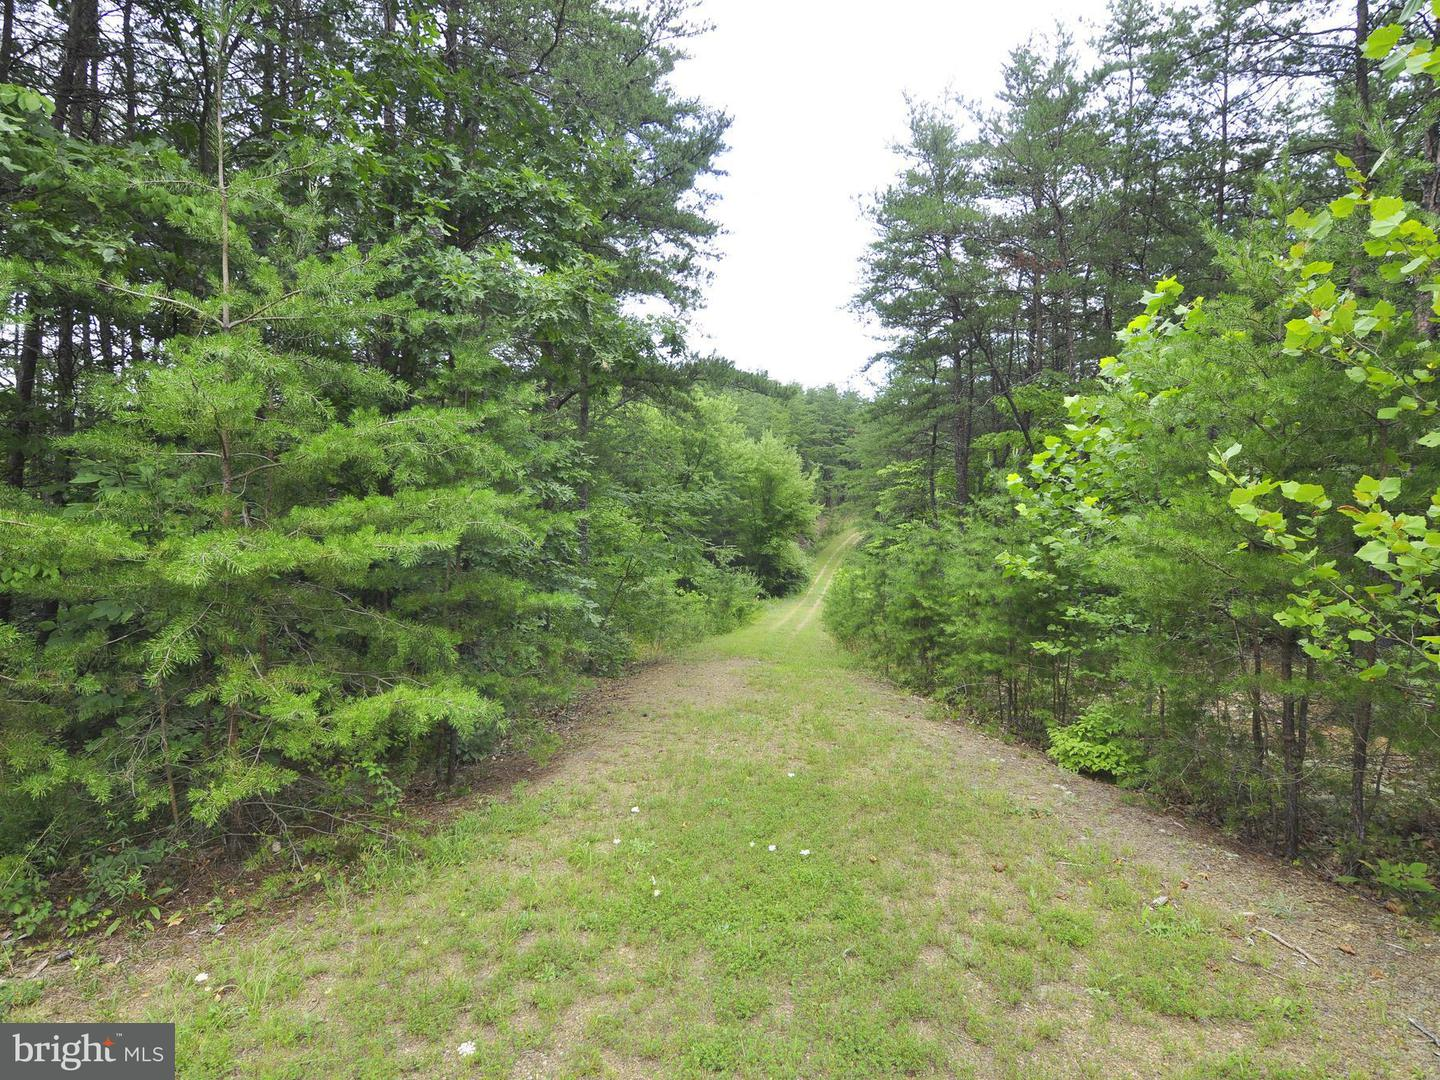 Land for Sale at 124 Donegal Ln Berkeley Springs, West Virginia 25411 United States